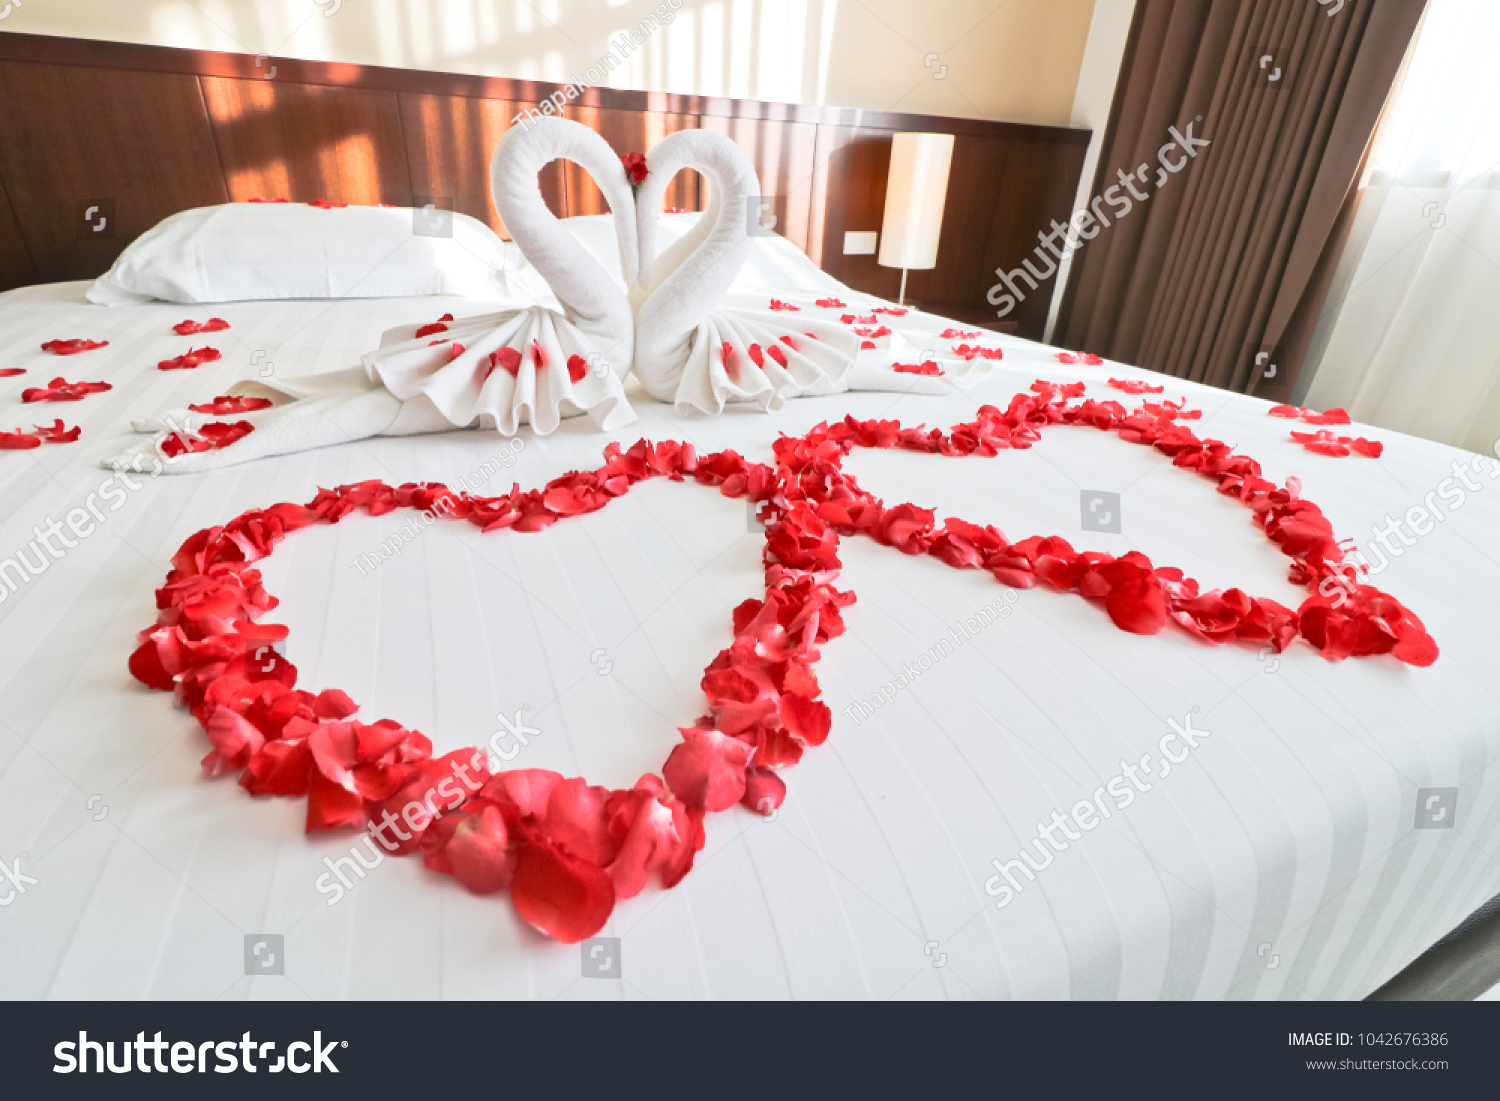 Bedroom Has White Towel Shaped Like Stock Photo Edit Now 1042676386